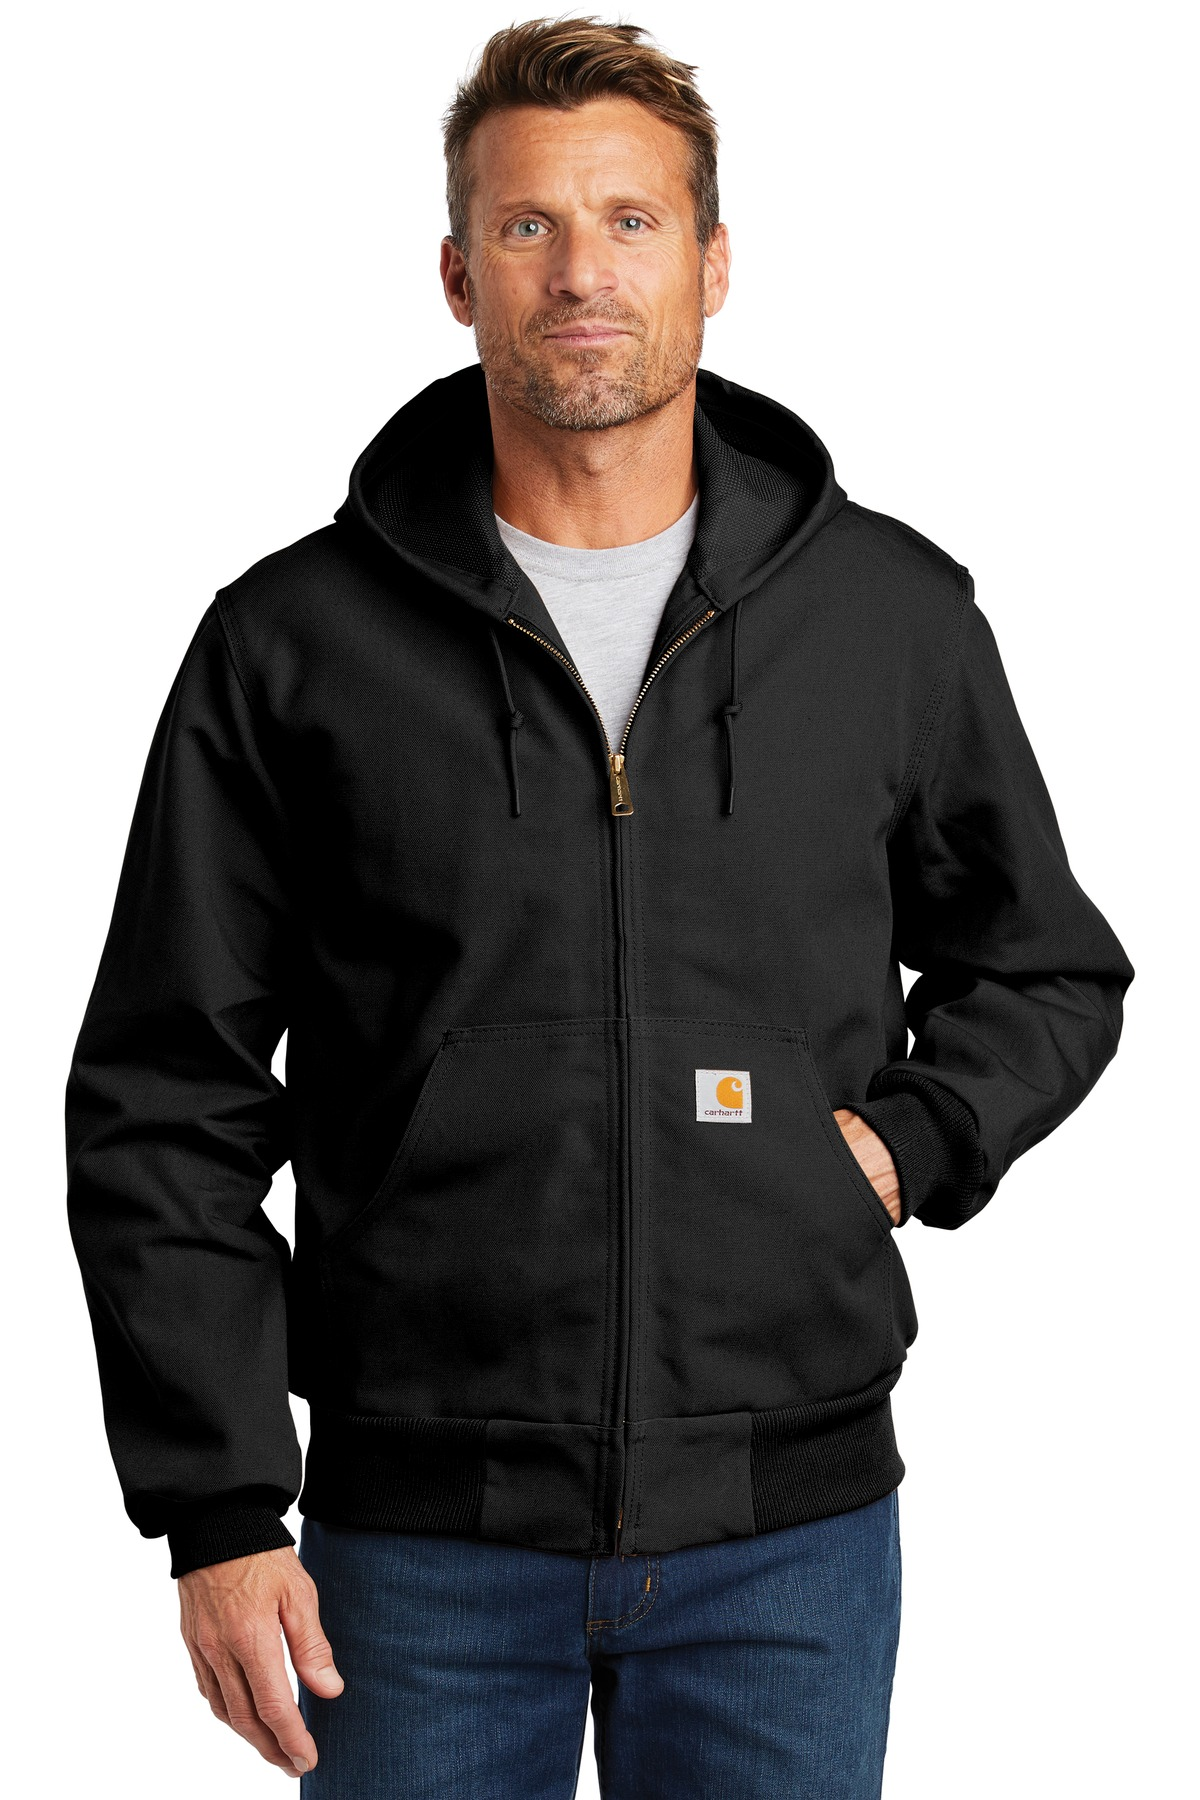 Carhartt  ®  Tall Thermal-Lined Duck Active Jac. CTTJ131 - Black